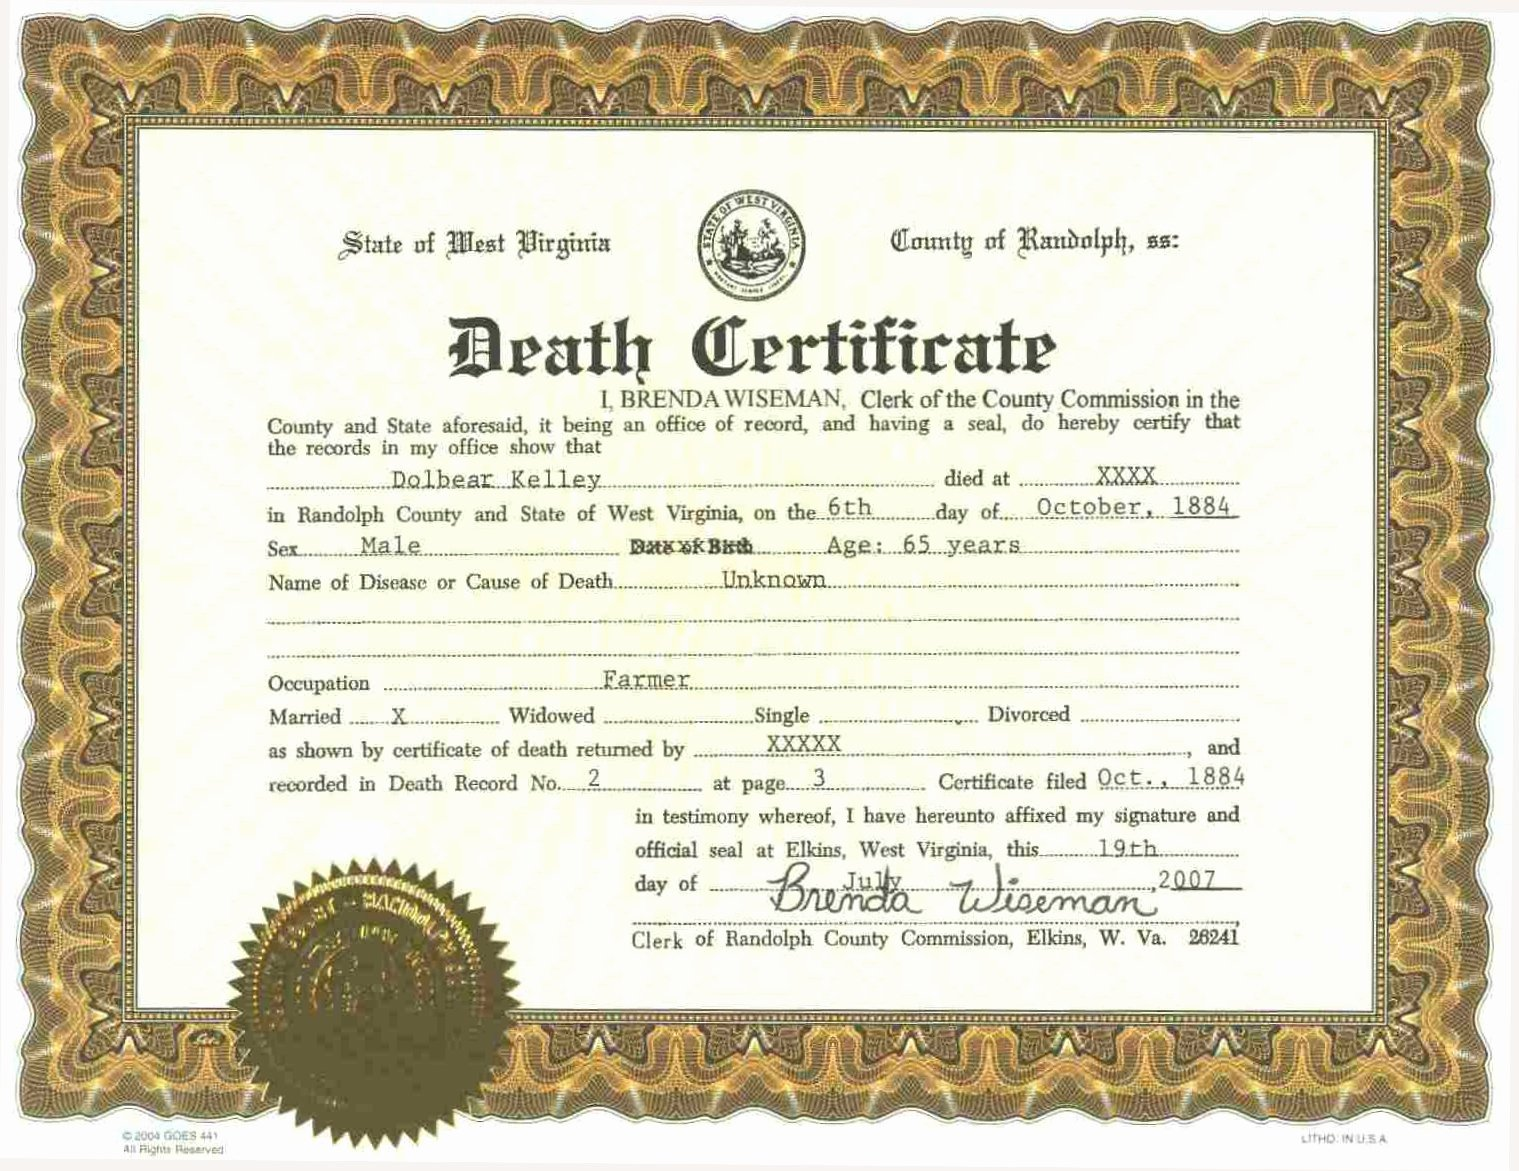 What Does A California Birth Certificate Look Like Luxury Jasa Legalisir Dan Legalisasi Akta Kematian Mediamaz